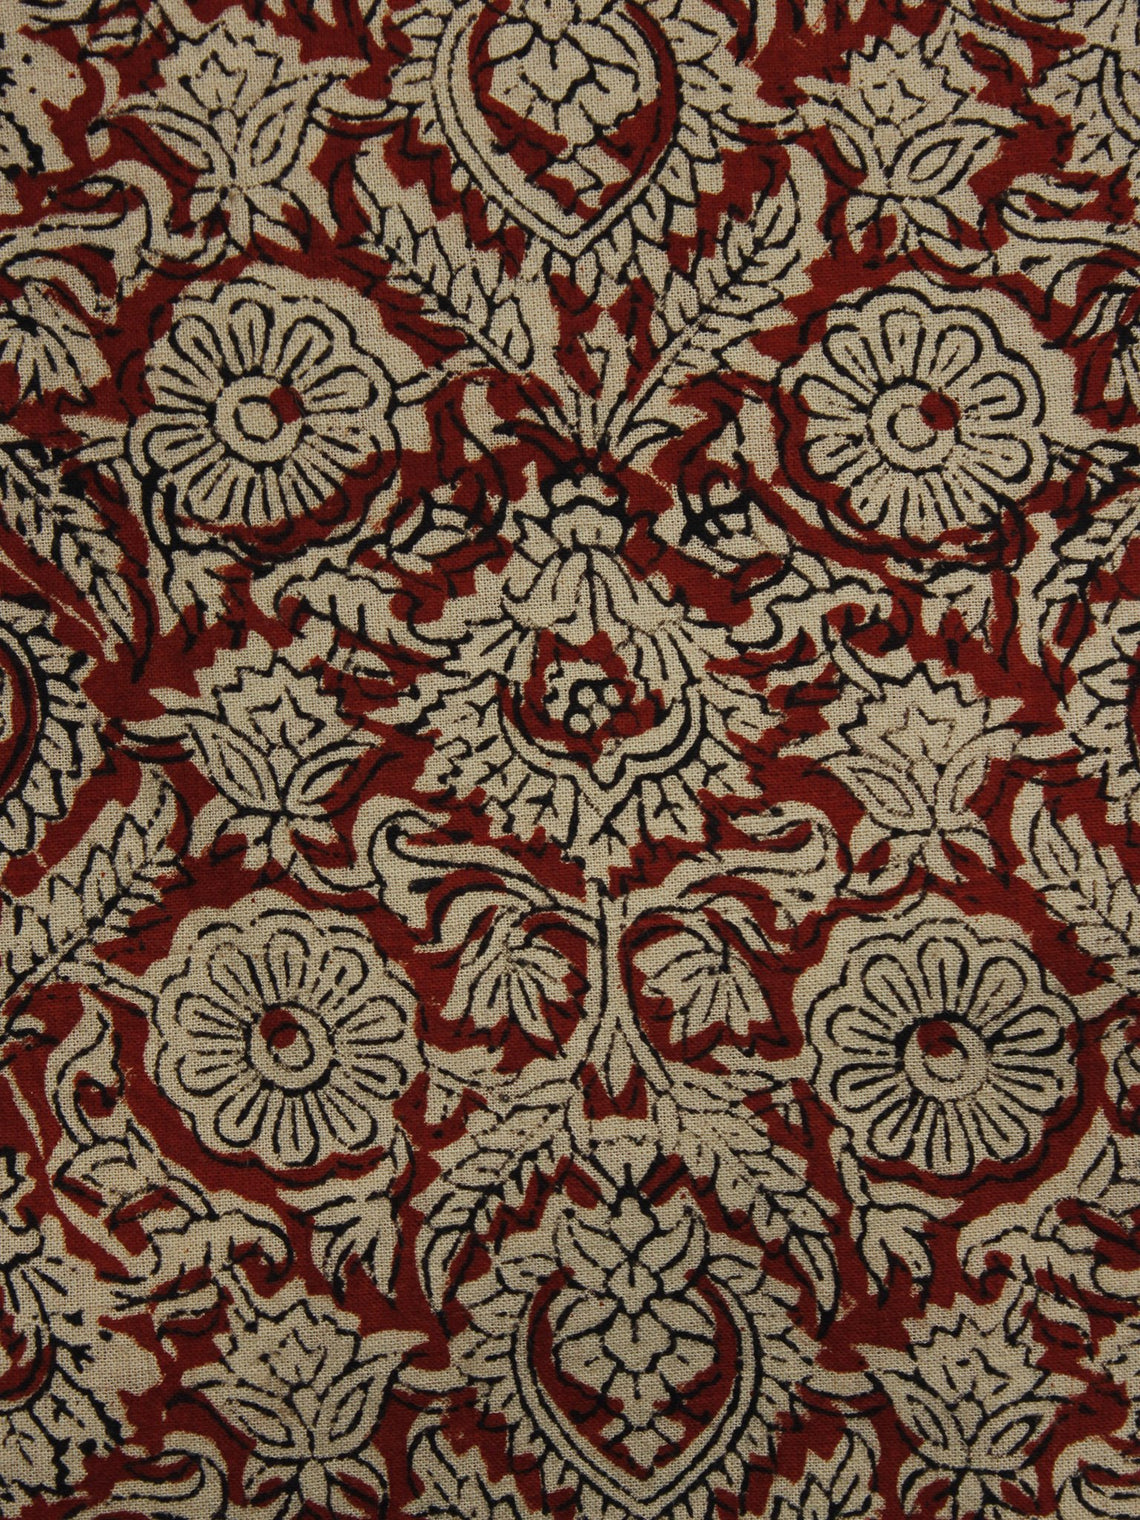 Beige Maroon Black Hand Block Printed Cotton Fabric Per Meter - F001F1084